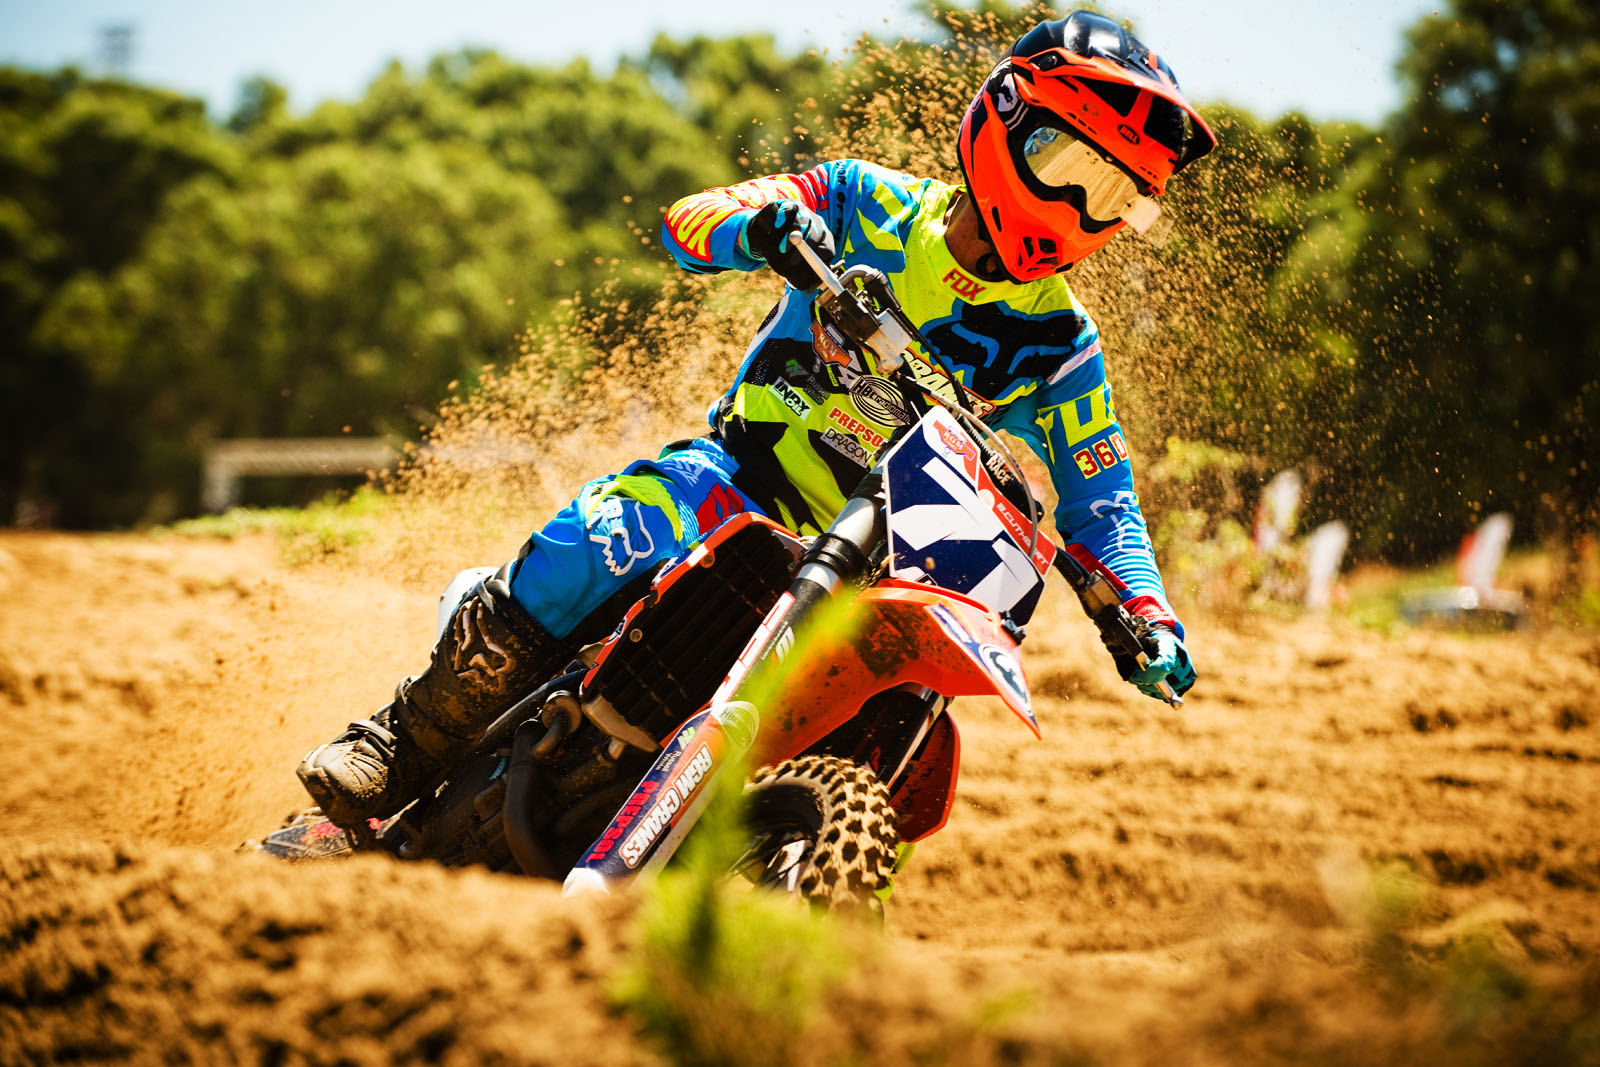 Brittany Cuthbert leading the Ladies motocross class